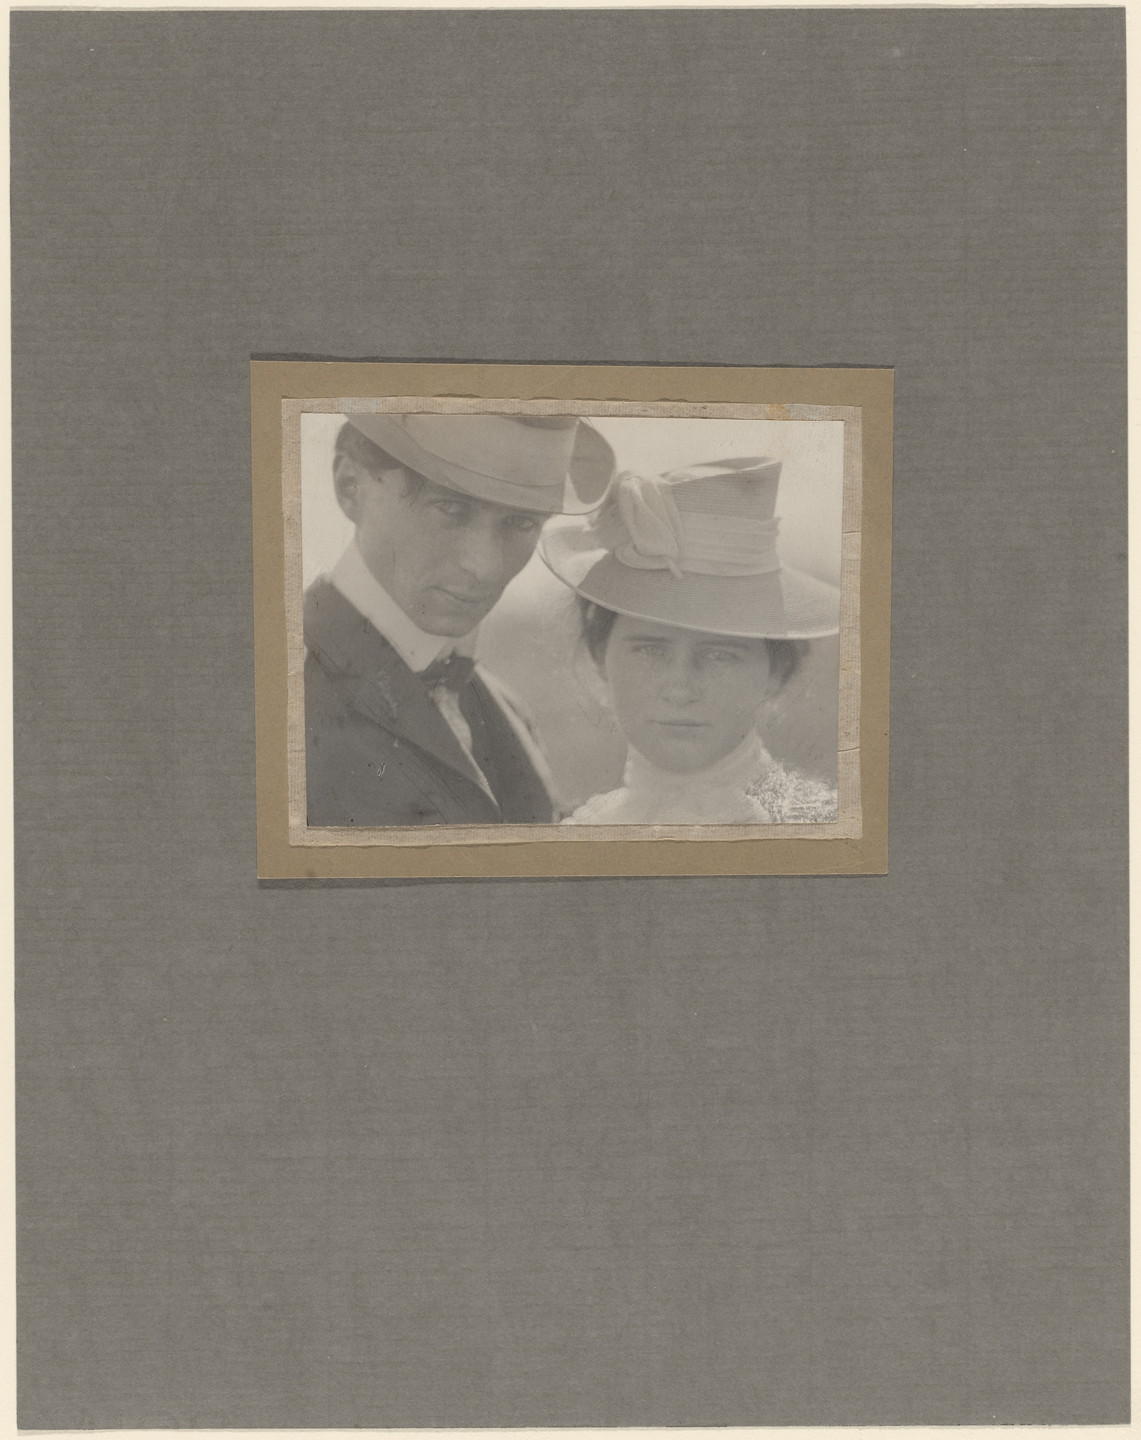 Edward Steichen. Self-Portrait with Sister. 1900